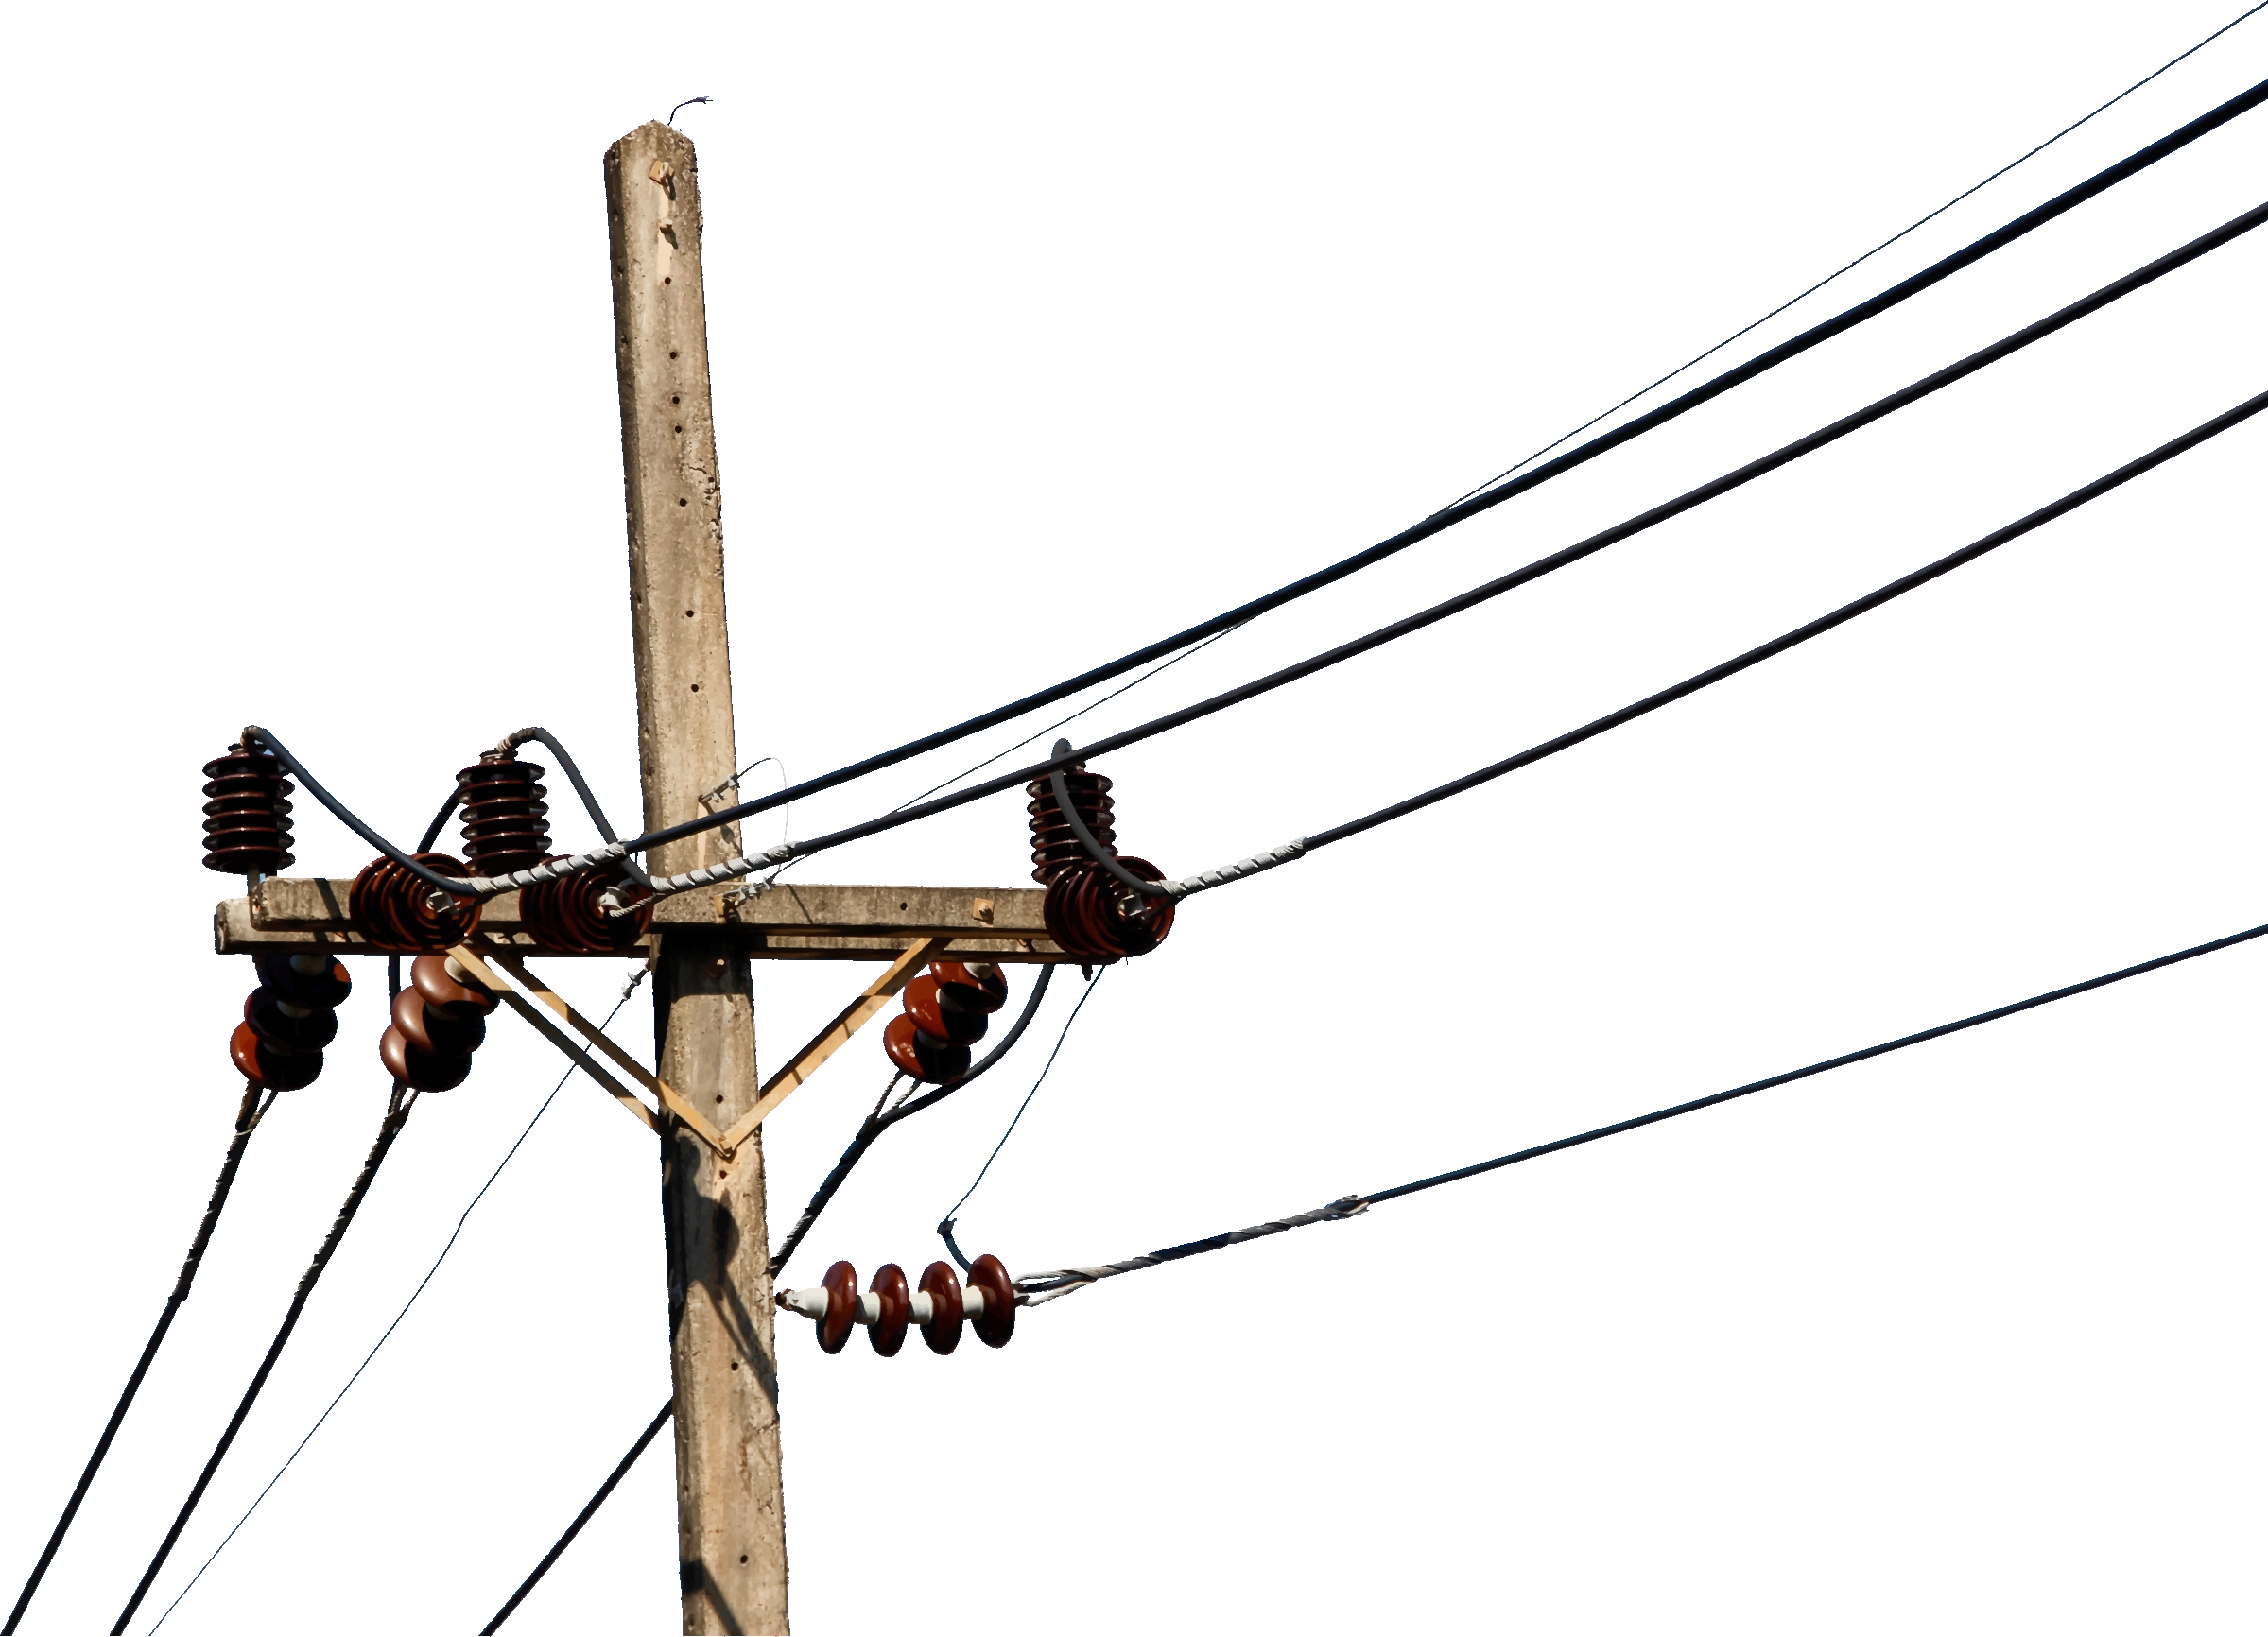 Electrical clipart utility. Powerlines big image png